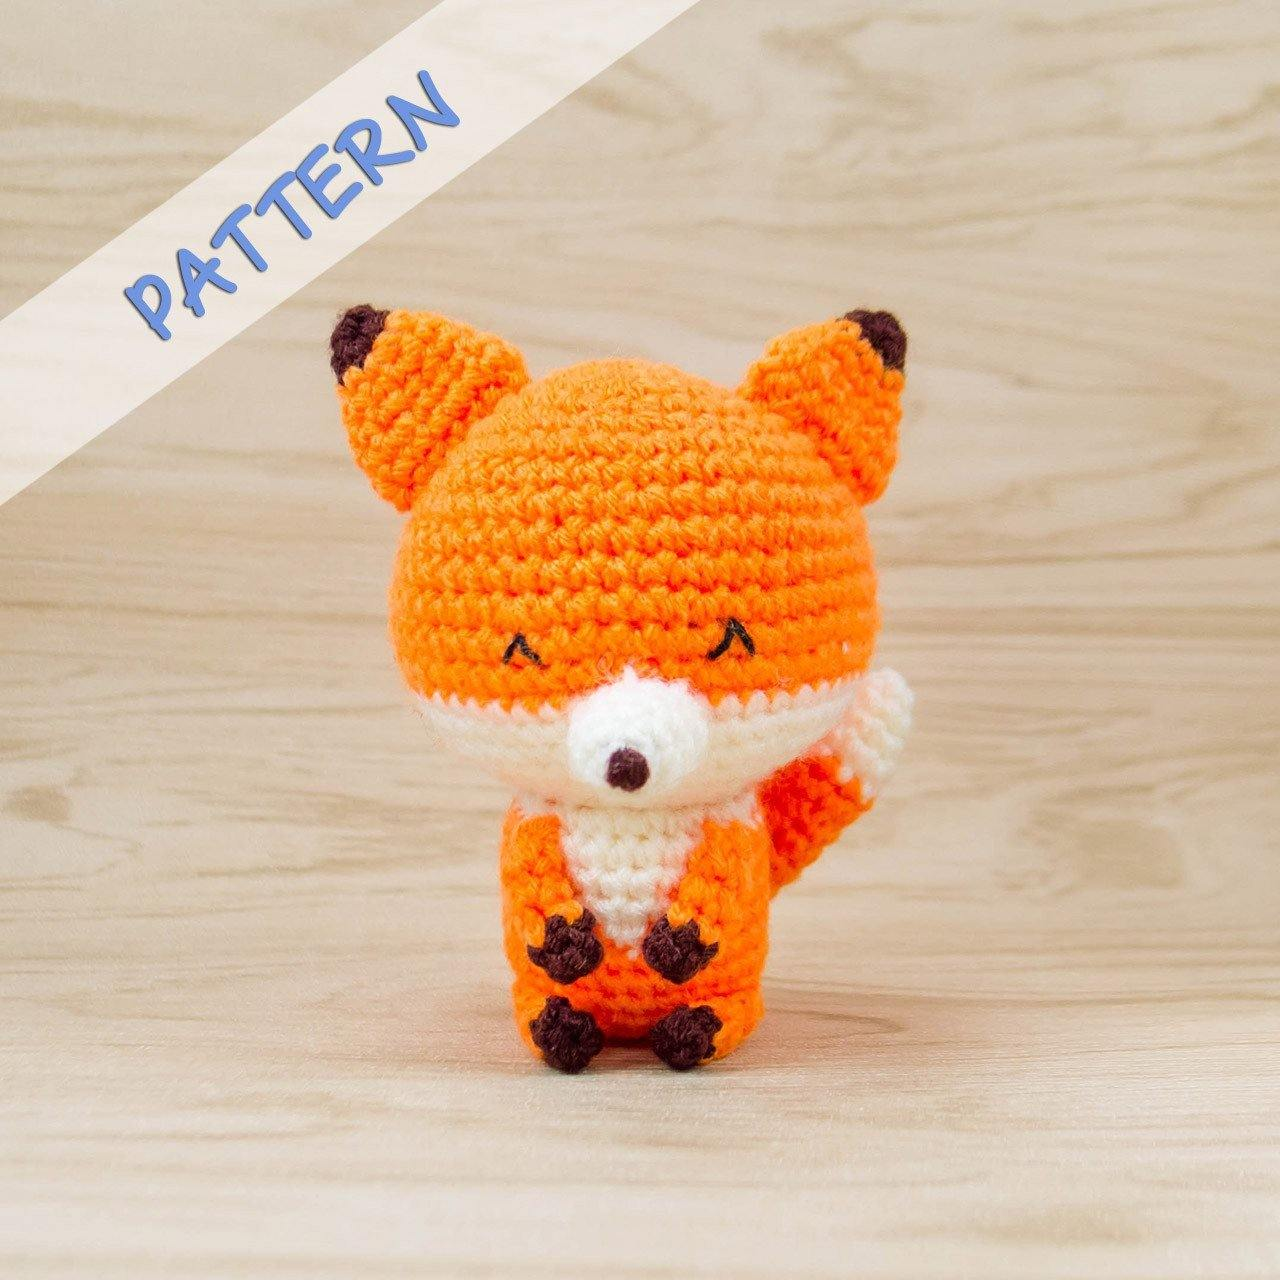 Amigurumi Today - Page 2 of 11 - Free amigurumi patterns and ... | 1280x1280